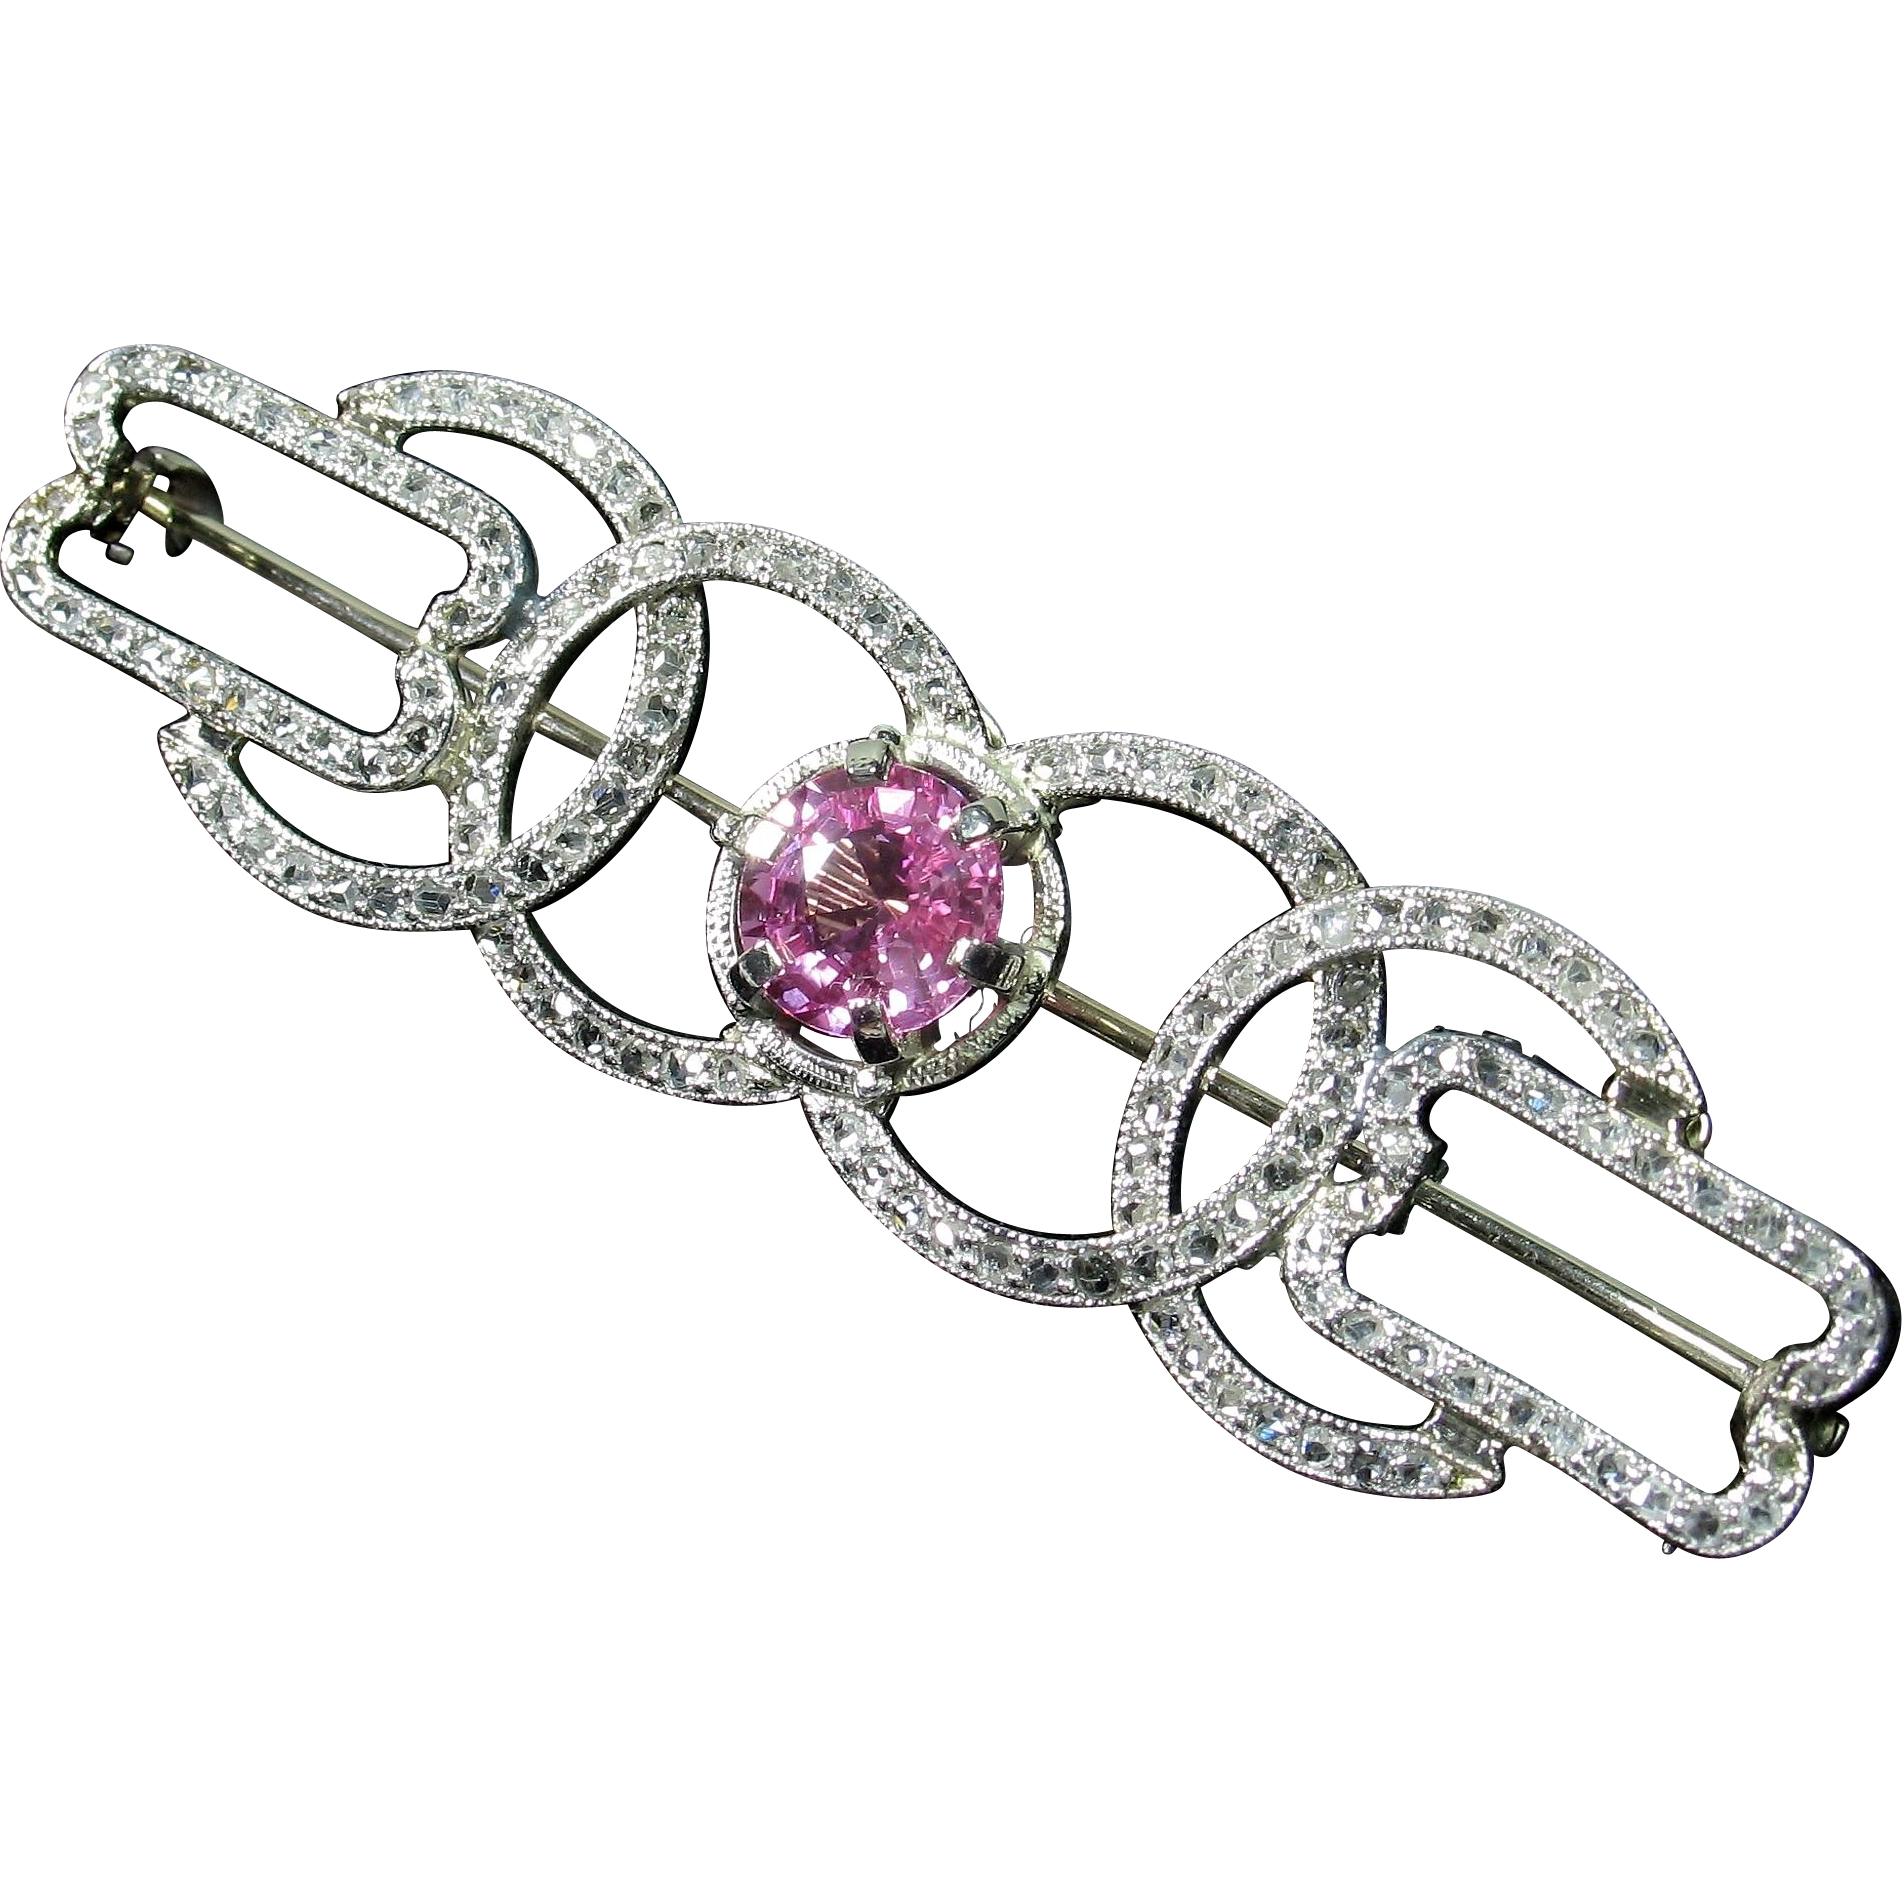 CMCC SALE! EDWARDIAN Rose-Cut Diamond & Unheated Pink Sapphire Brooch